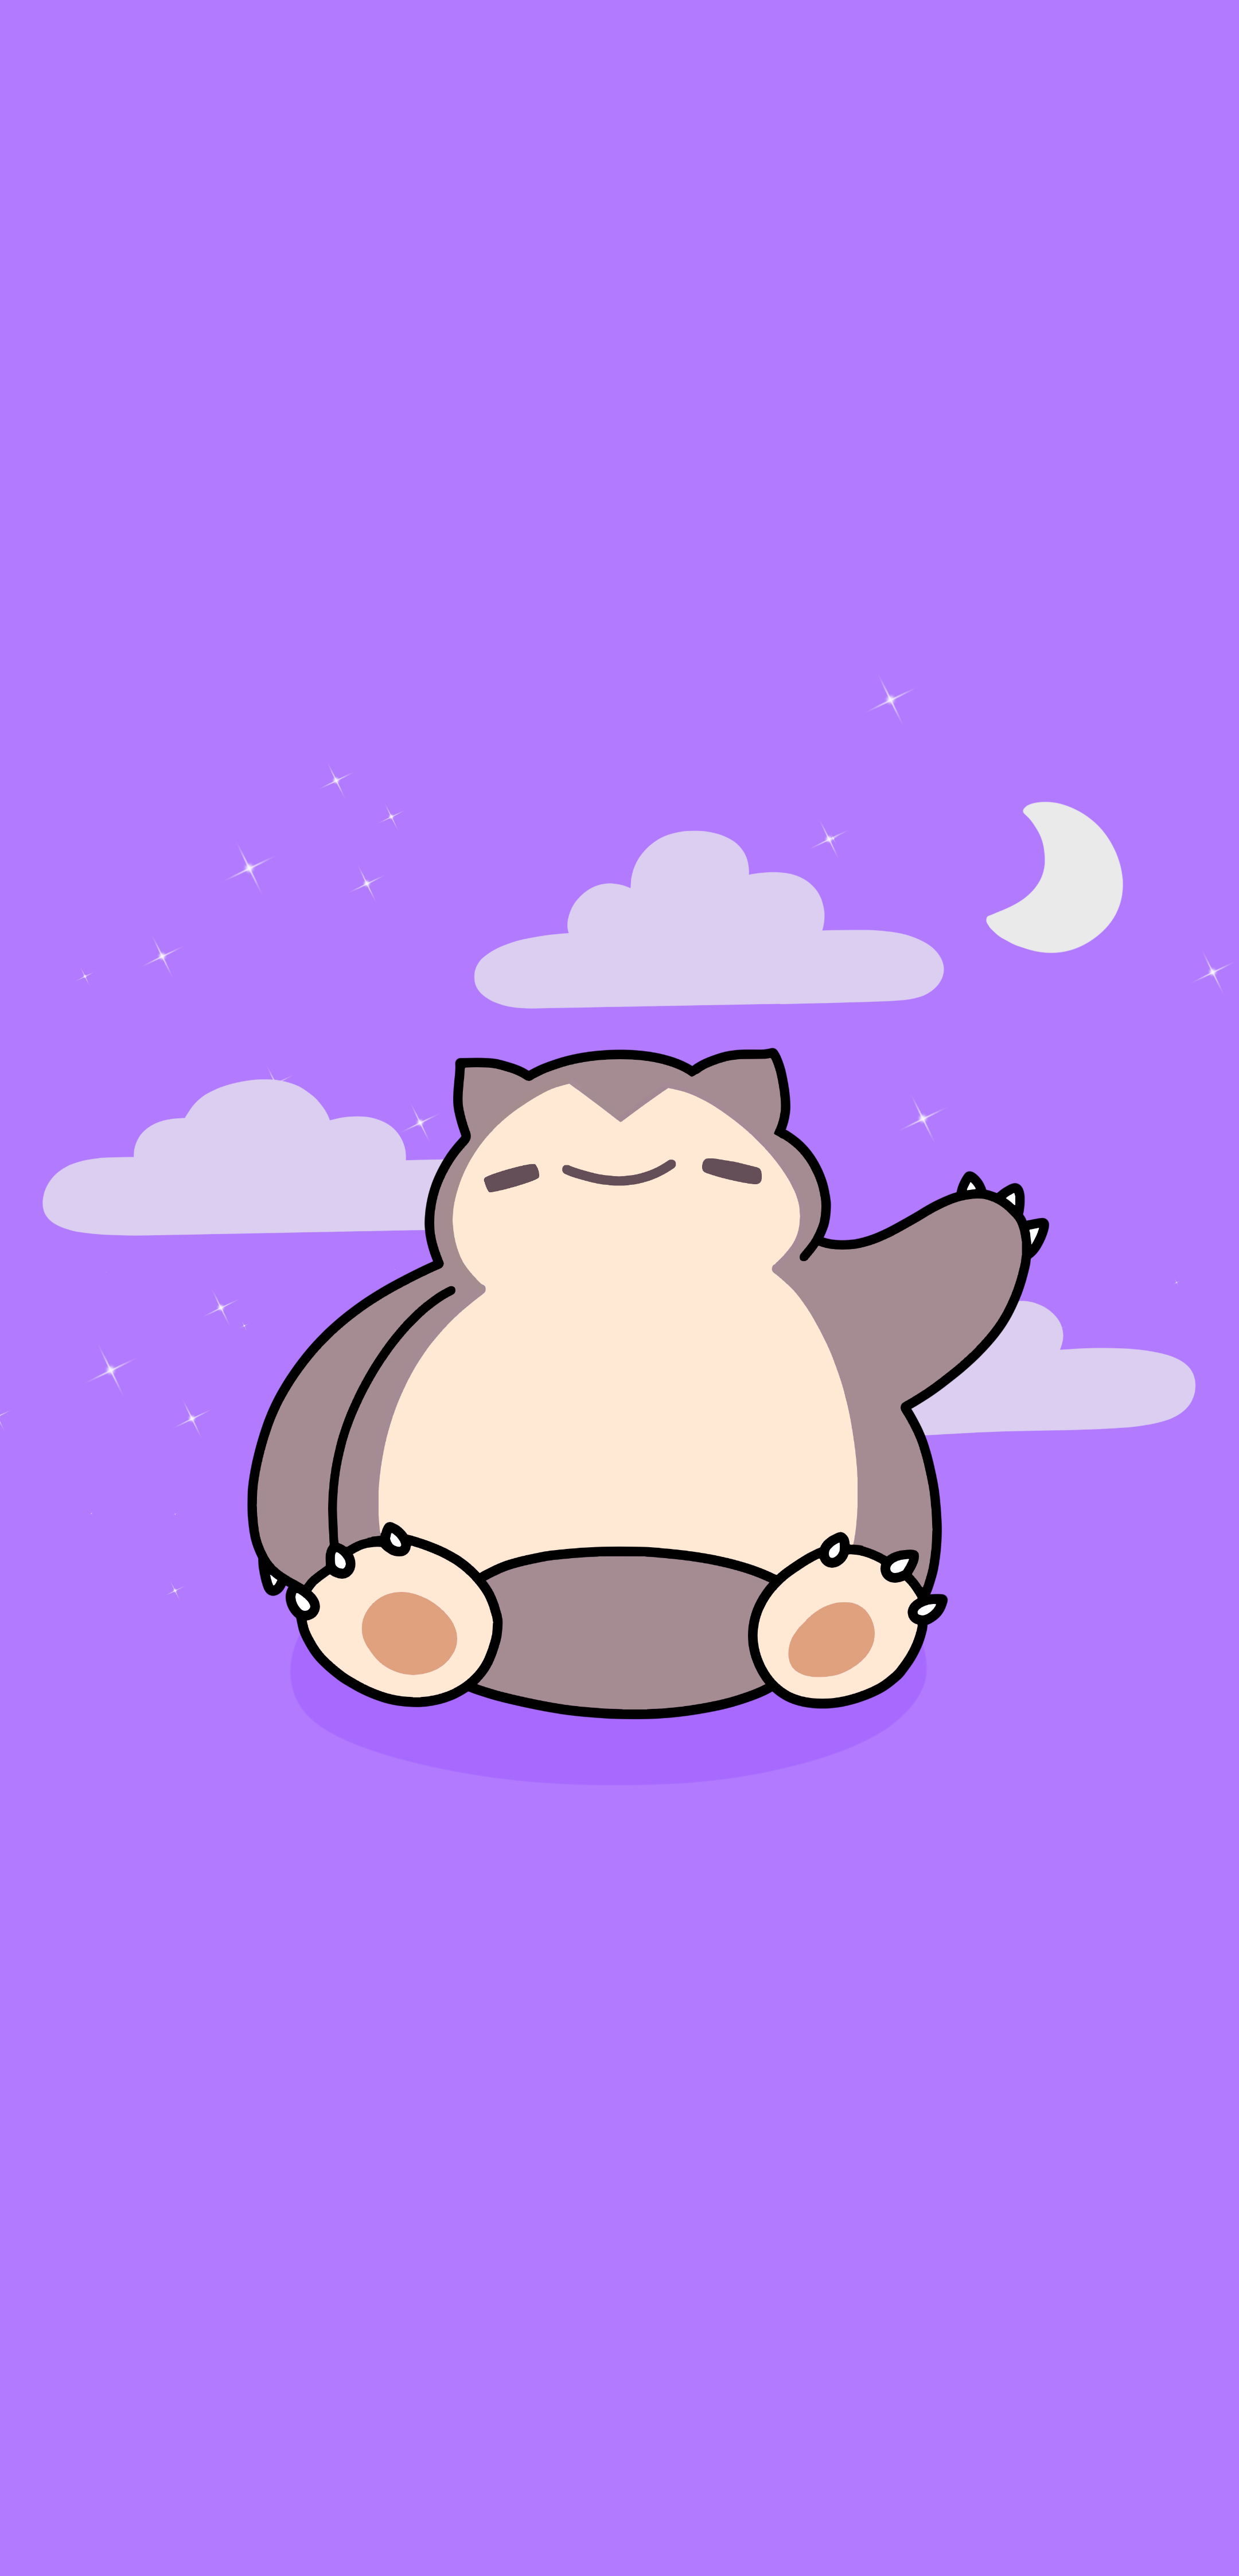 Snorlax Wallpaper inspired by FableFire [2160x4492